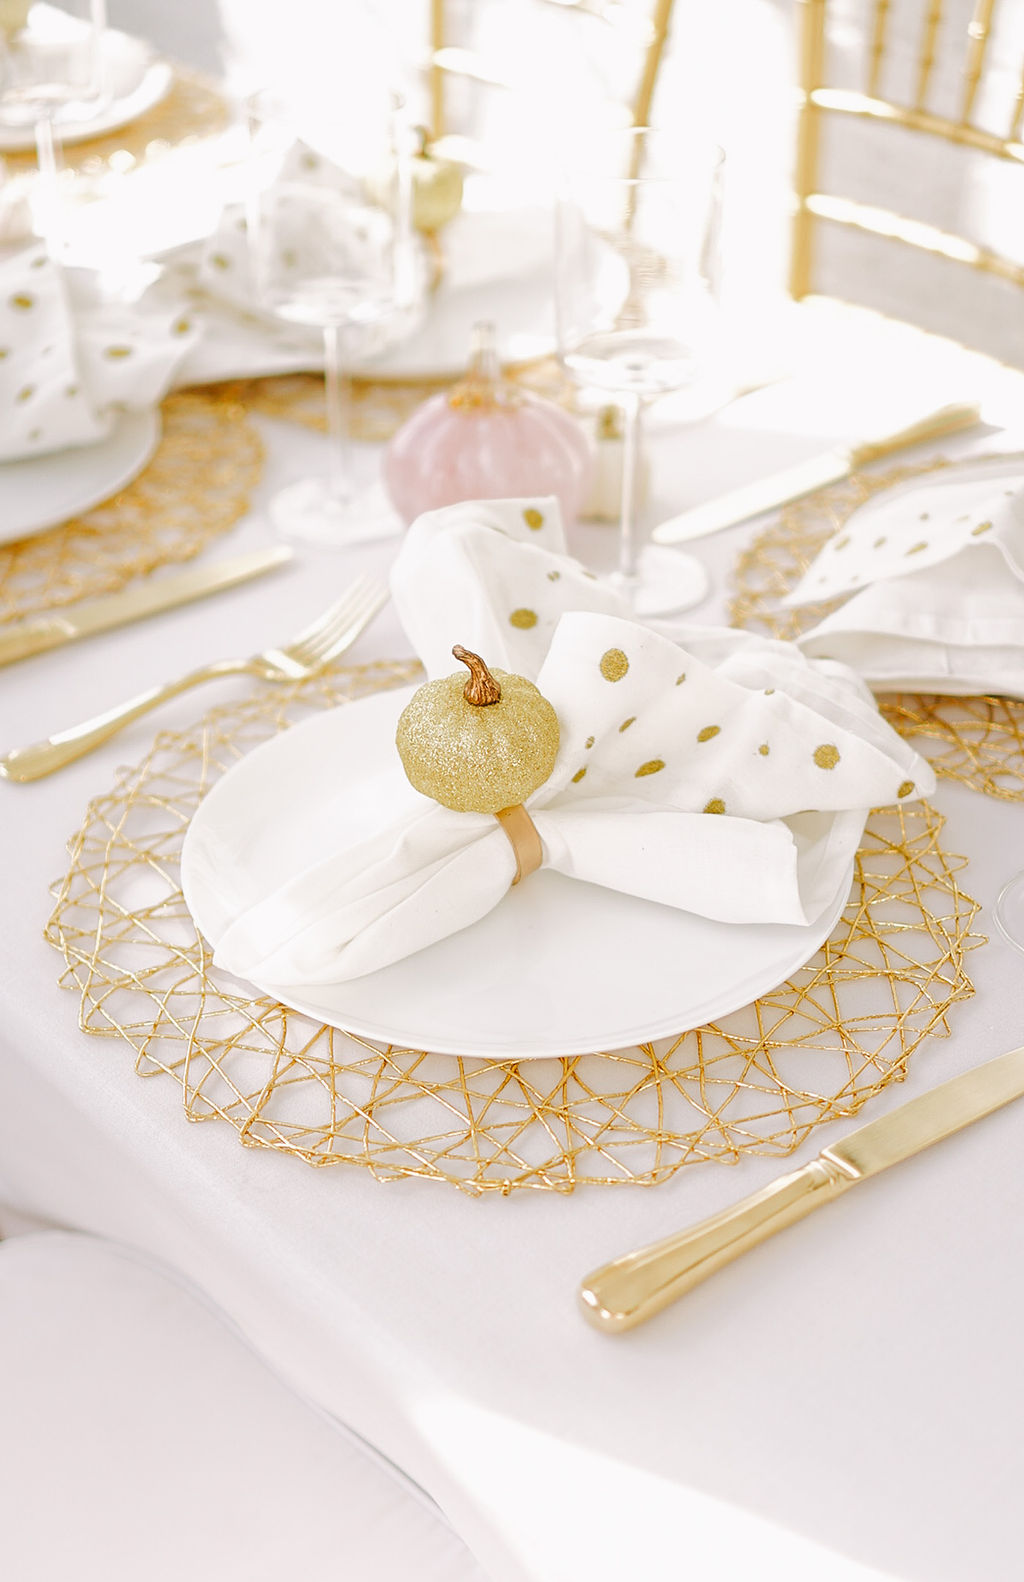 A feminine Fall party by Lauren Cermak of the Southern Lifestyle Blog, Going For Grace. Sharing 3 tips for beautiful Fall entertaining and tablescapes!